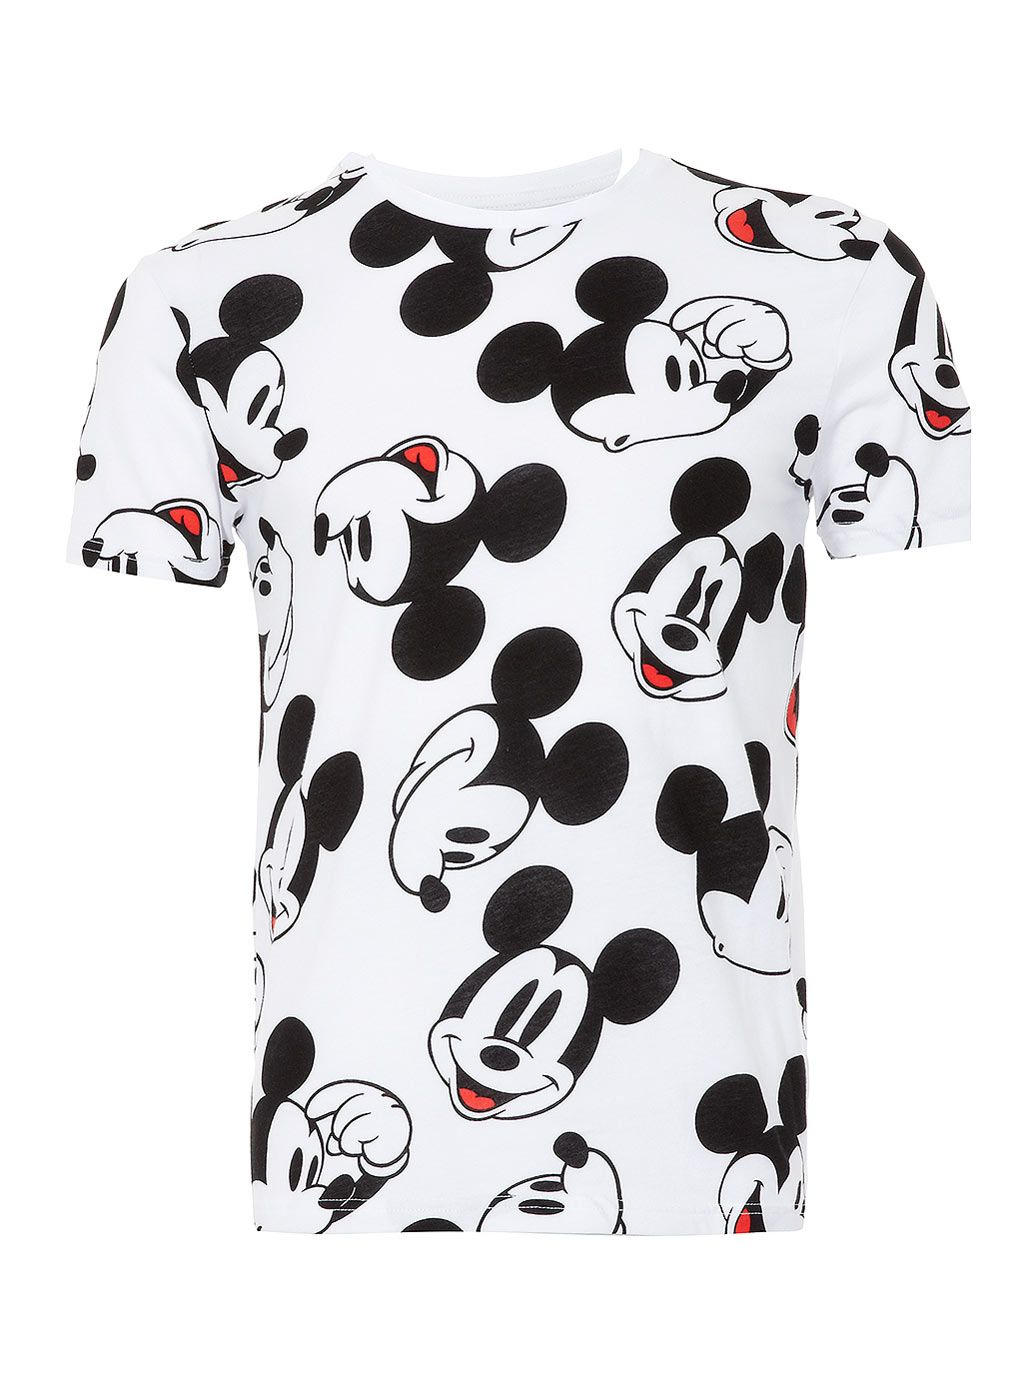 white mickey mouse face t shirt topman price tops shirts mickey mouse t shirt. Black Bedroom Furniture Sets. Home Design Ideas